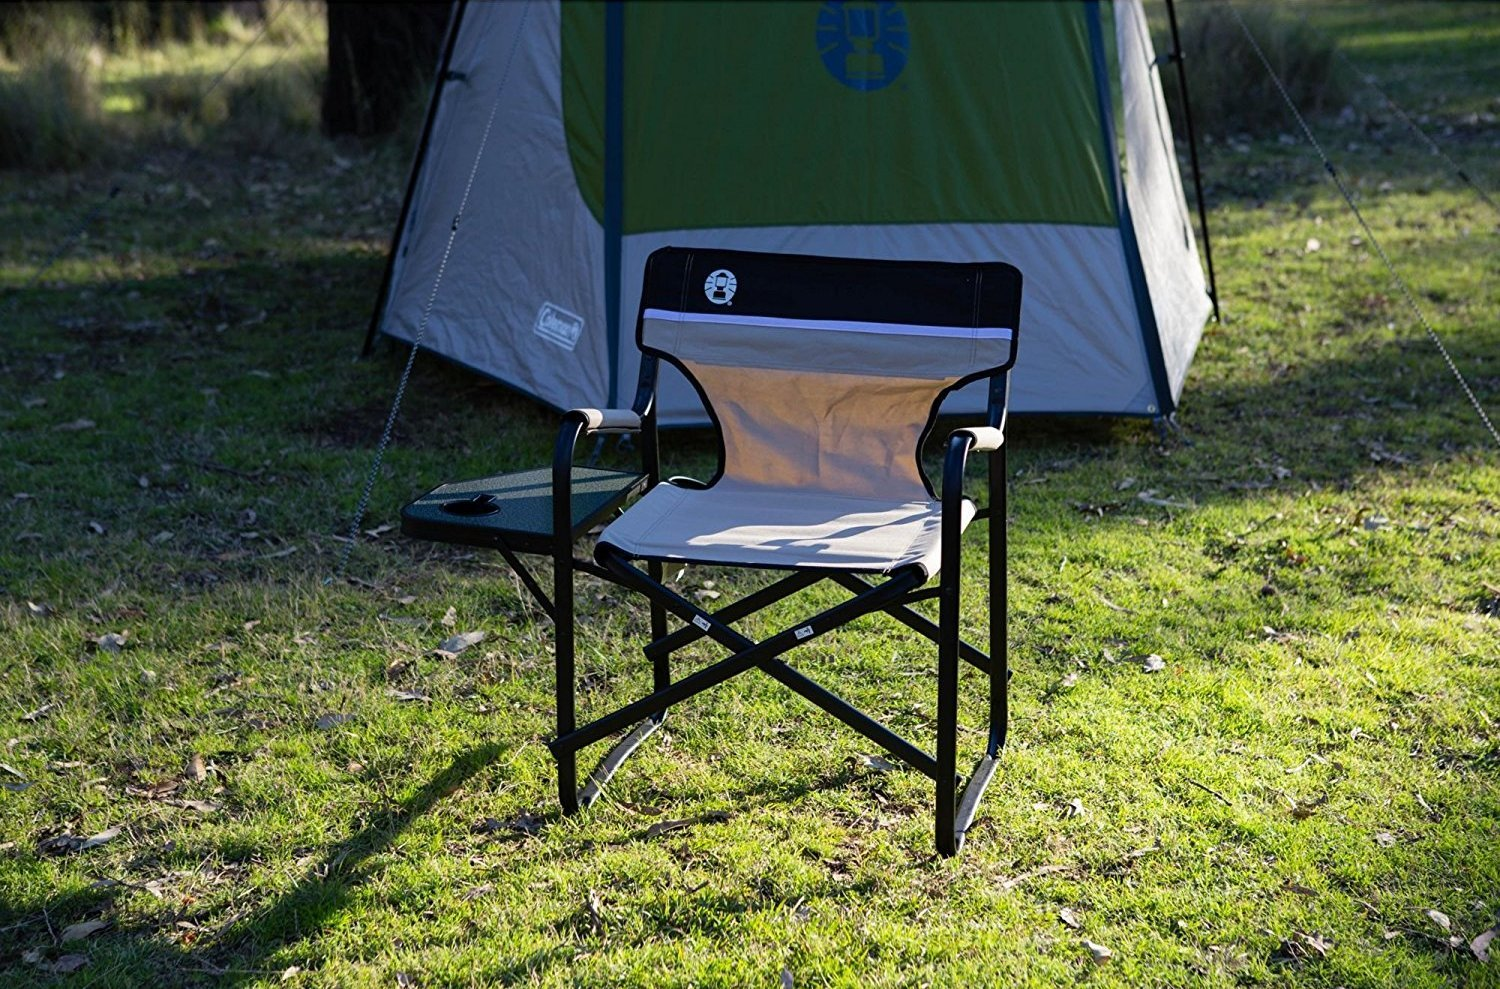 coleman portable deck chair modern accent chairs for living room best camping of 2018 buying guide comparison and reviews